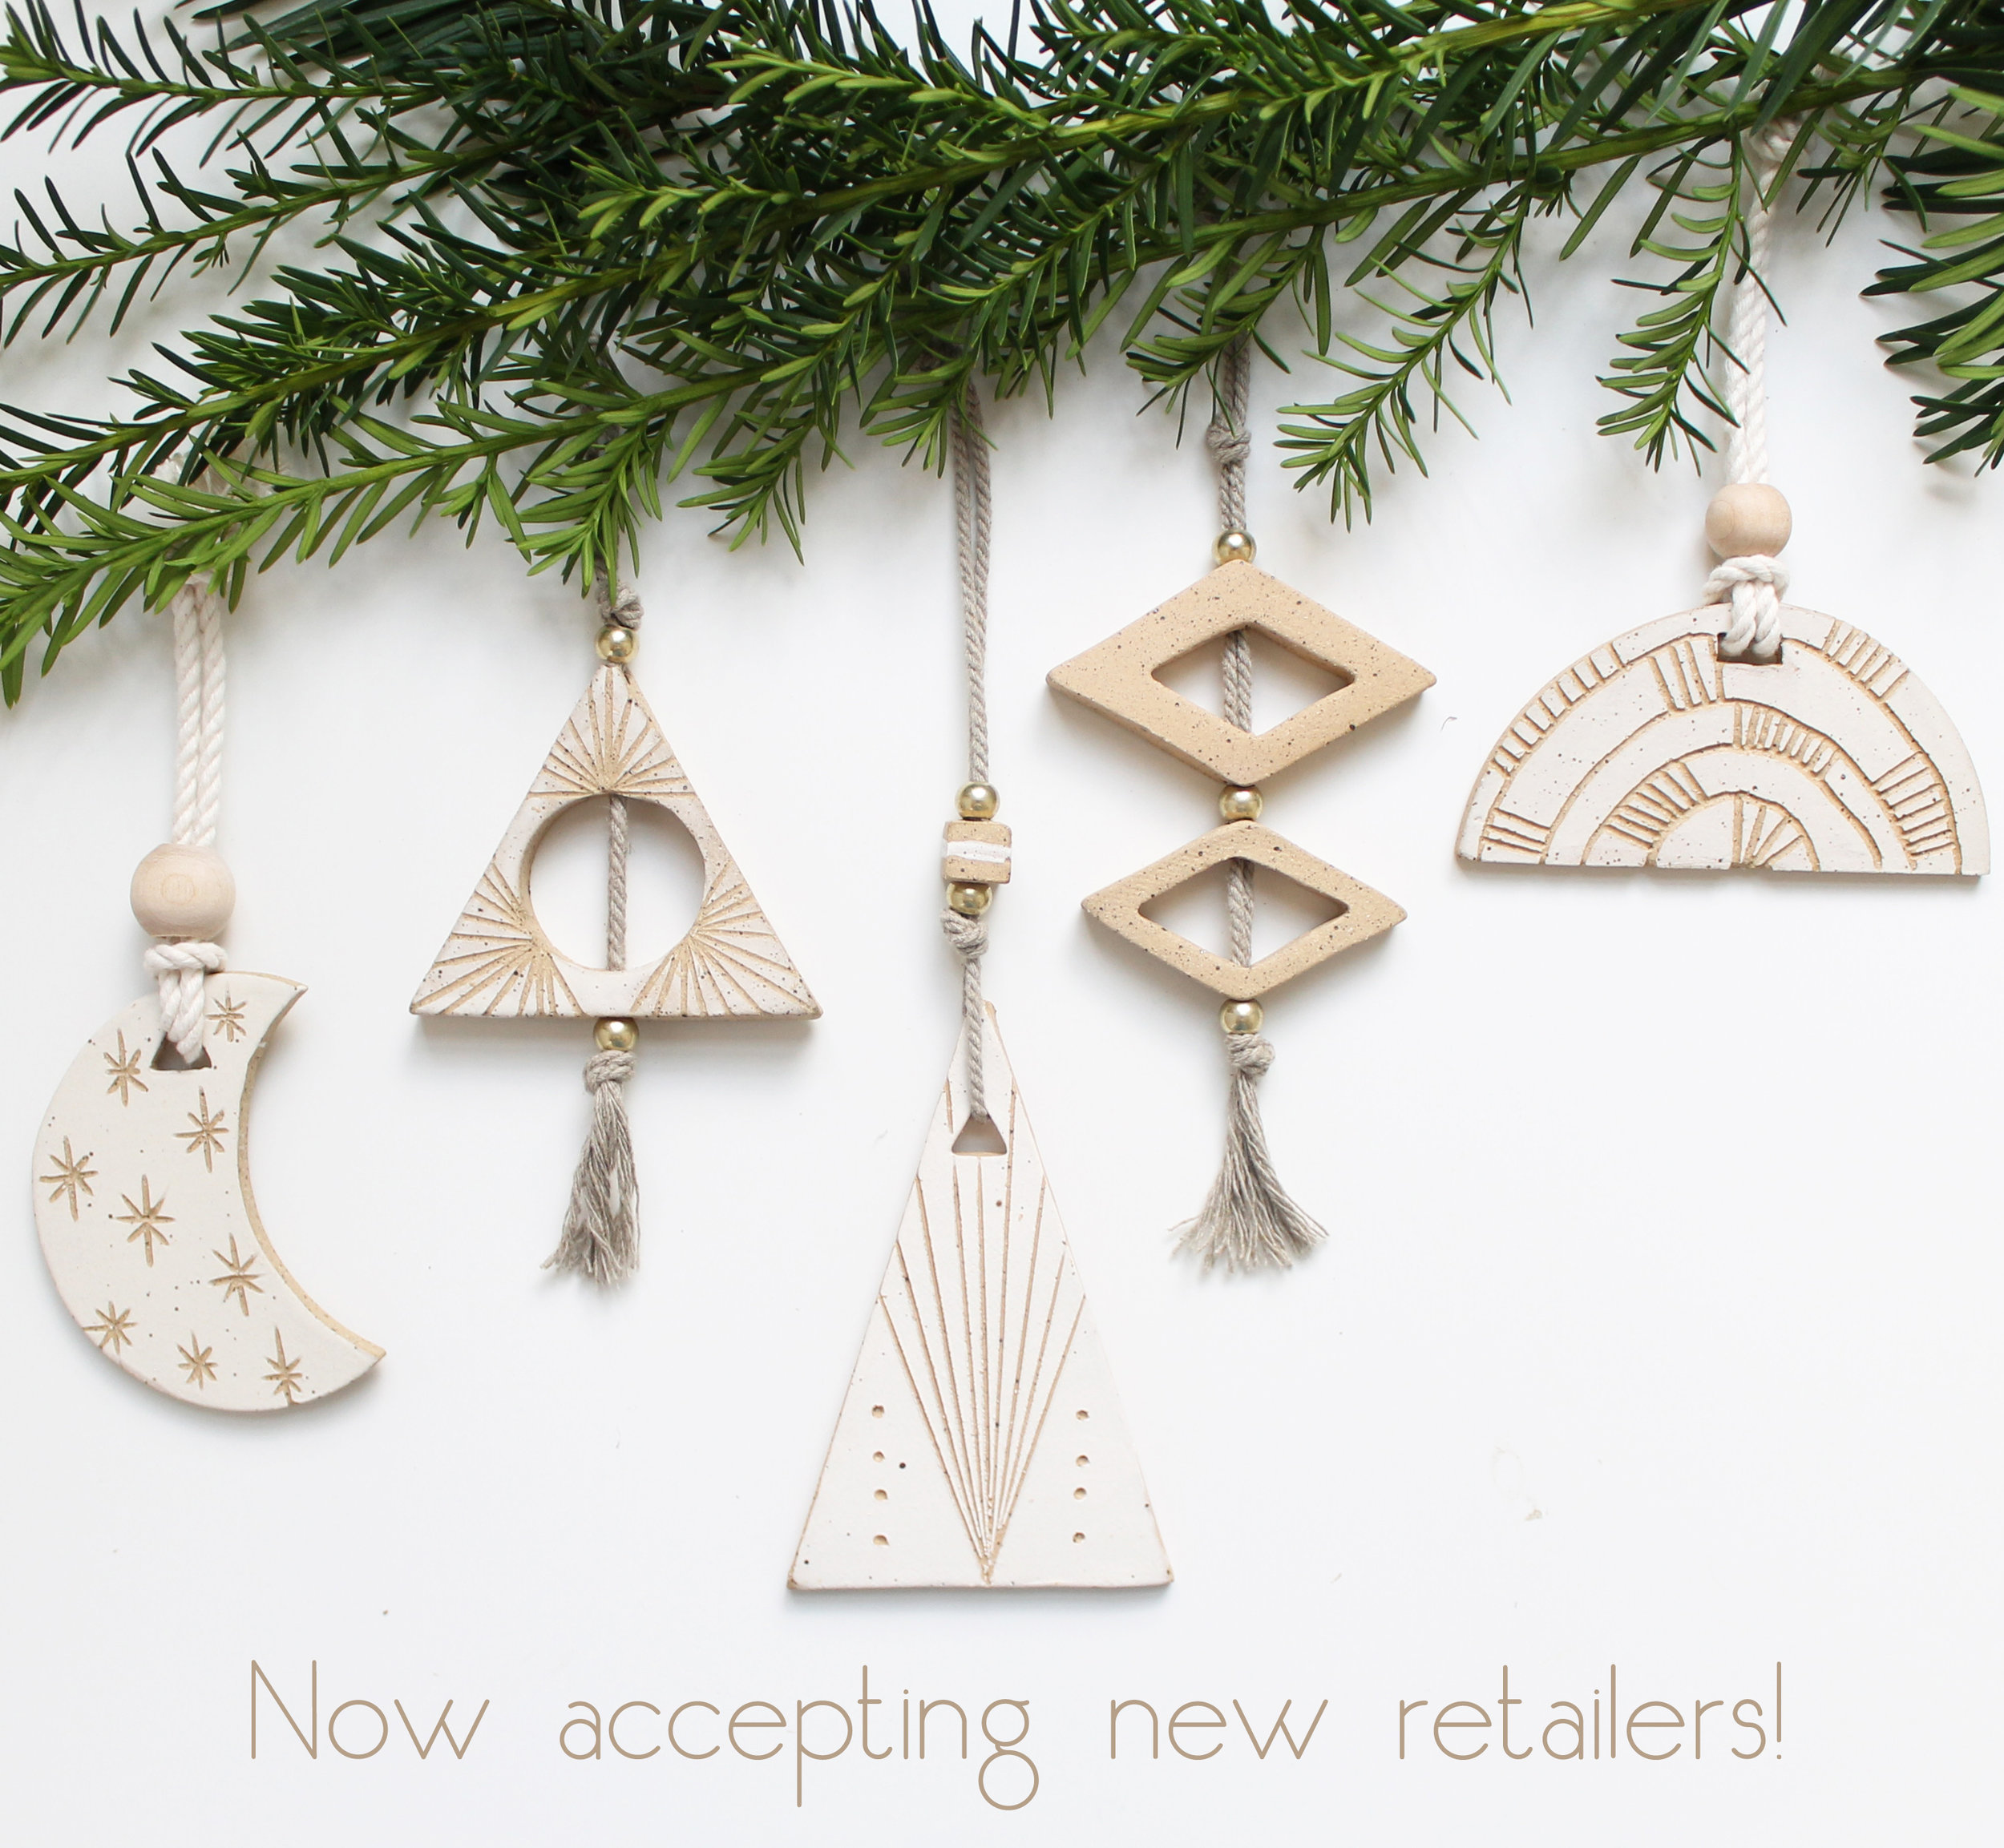 Ornaments with branch wholesale.jpg